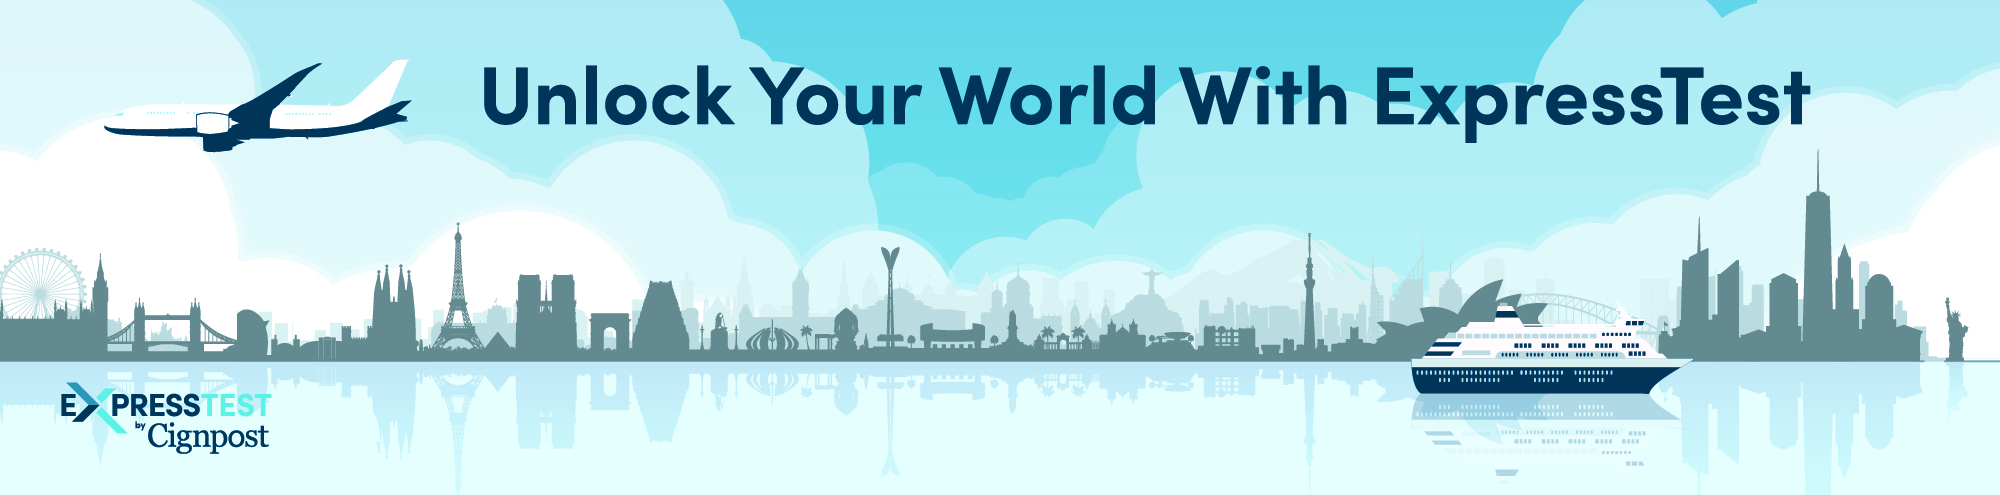 Unlock Your World With ExpressTest supergraphic